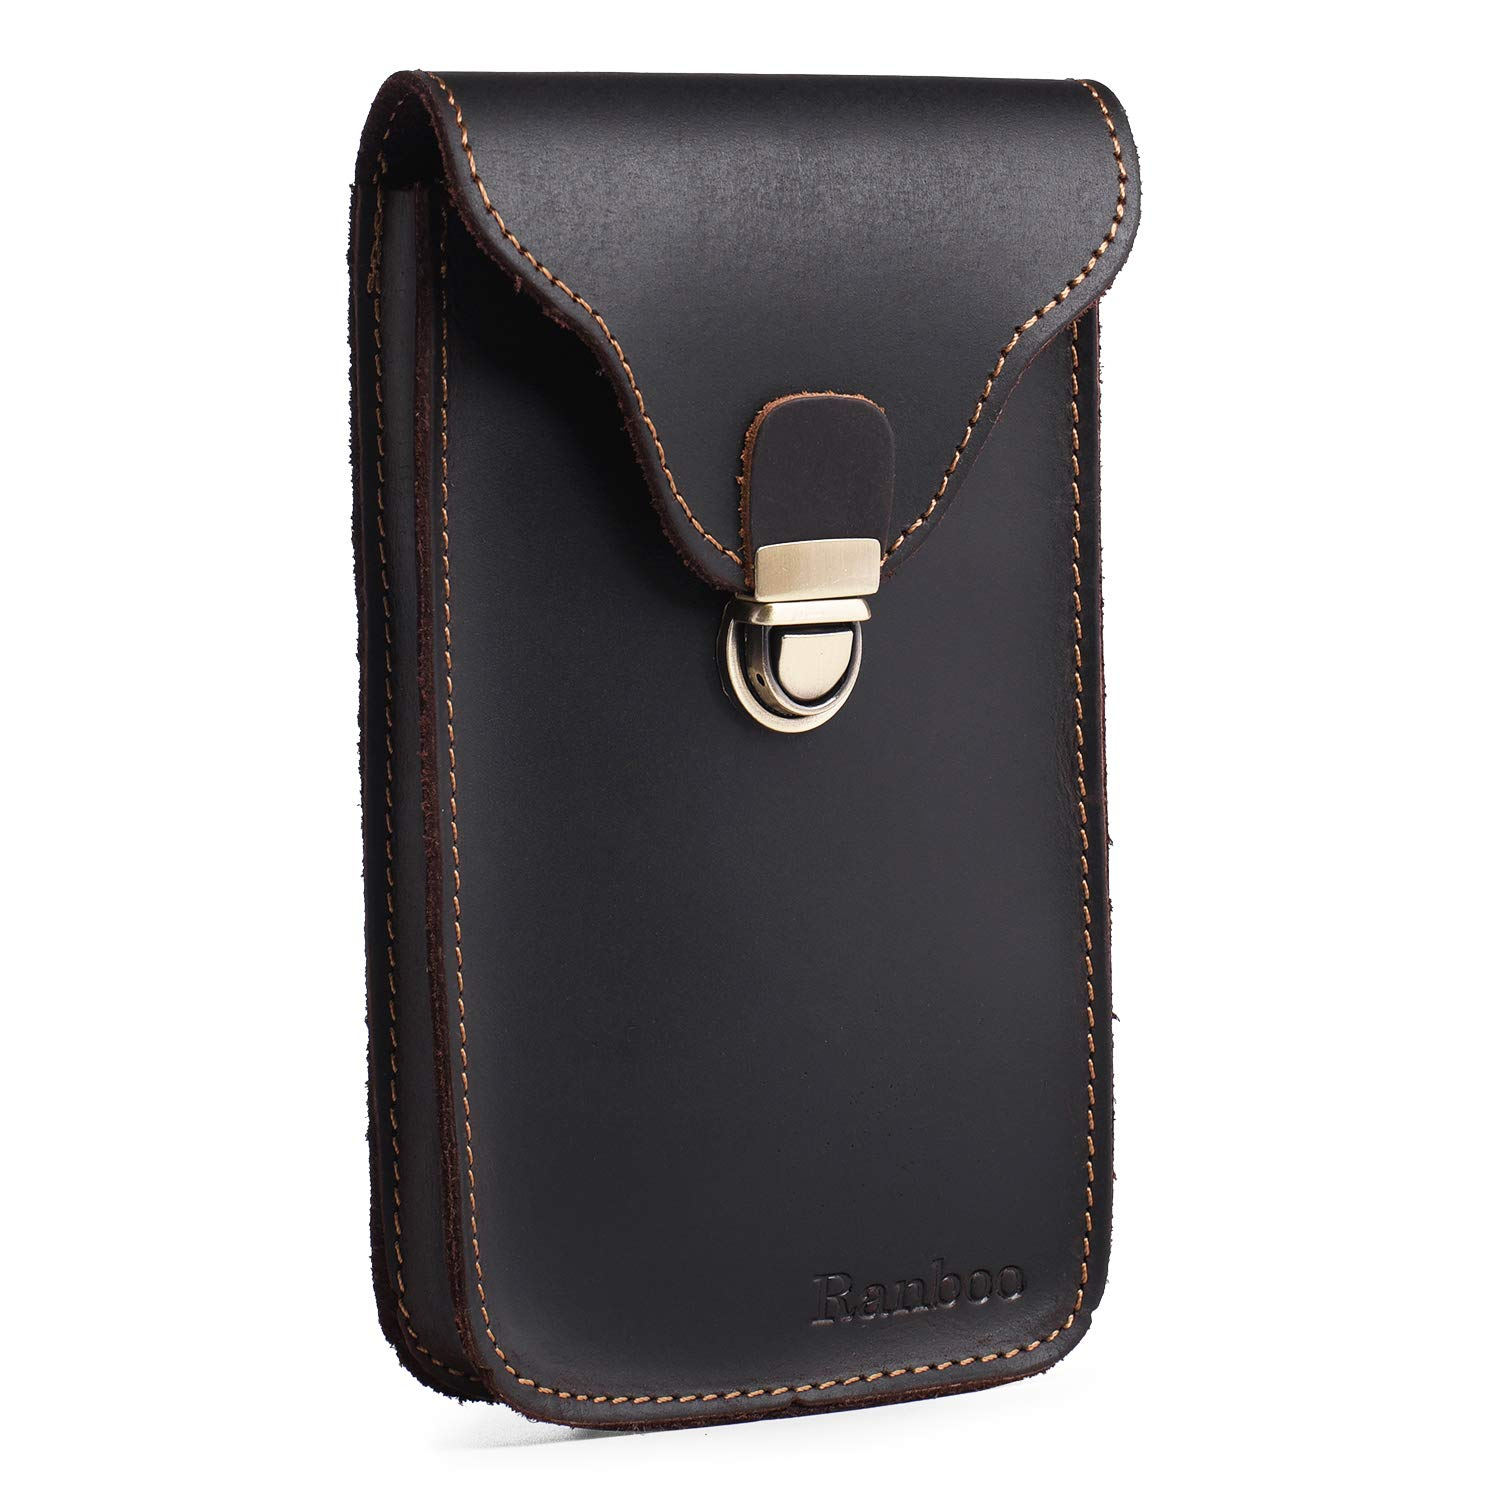 Ranboo Leather Holster Pouch for iPhone Xs Max XR X 7 8 Plus Vertical Belt Case with Belt Clip Men's Belt Loop Pouch Carrying Phone Holder for Galaxy S9 8 Plus Note 9 8 with Slim Case (Dark Coffee)